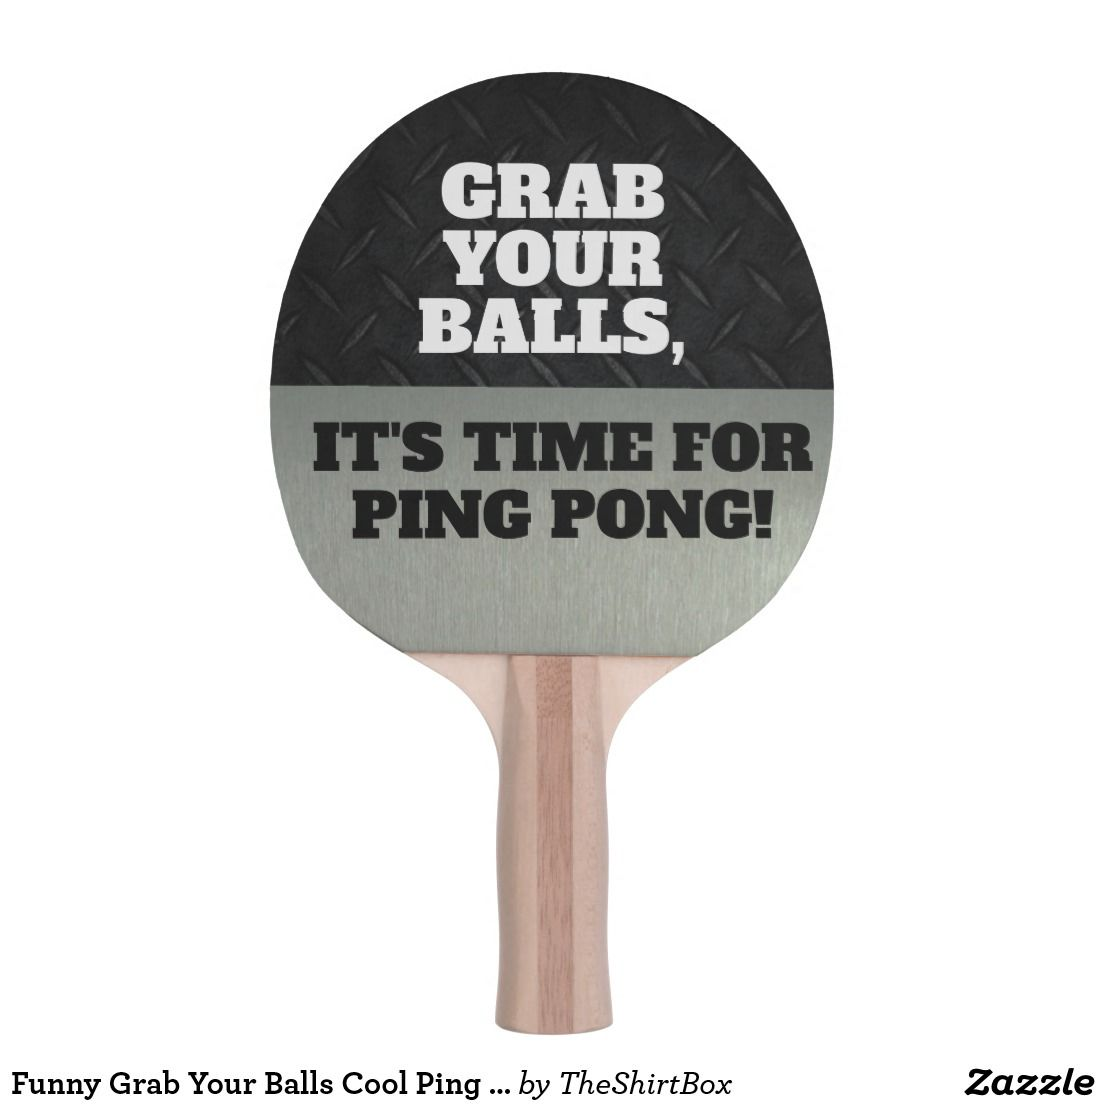 Funny Grab Your Balls Cool Ping Pong Quote Ping Pong Paddle A Black And Silver Design For The Avid Ping Pong Player With A Fu Ping Pong Paddles Ping Pong Ping